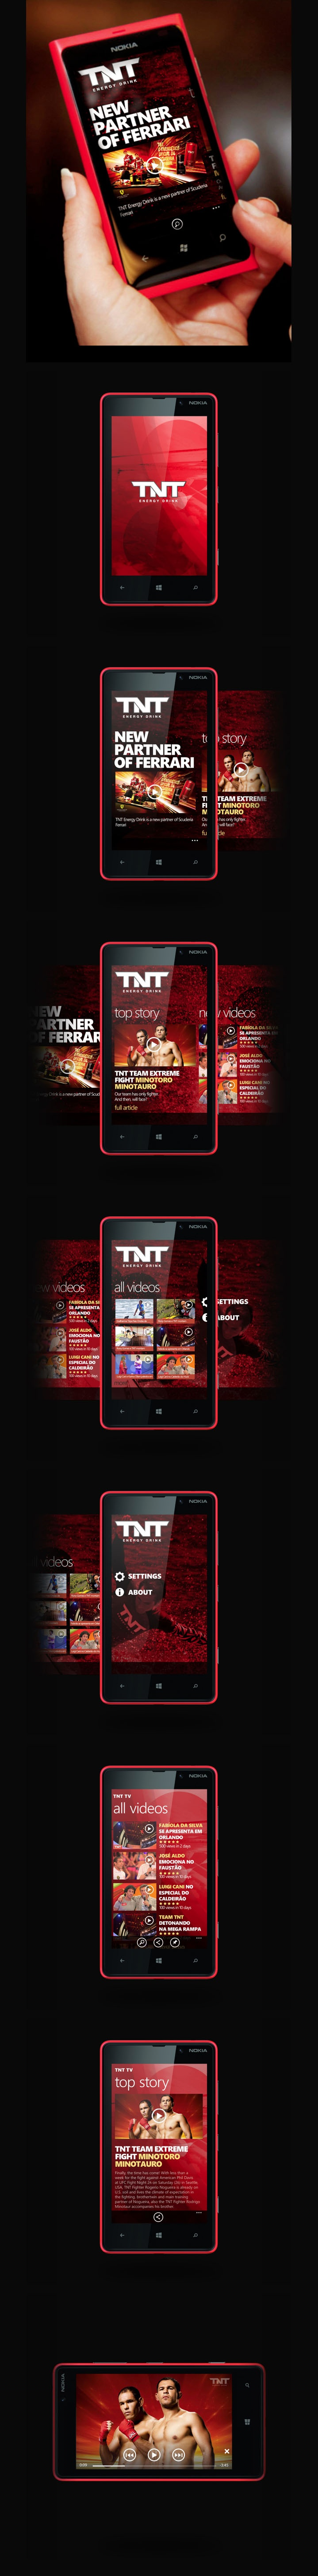 TNT Energy Drink - App for Windows Phone by Robson Pereira, via Behance  Proposed Application TNT Energy Drink